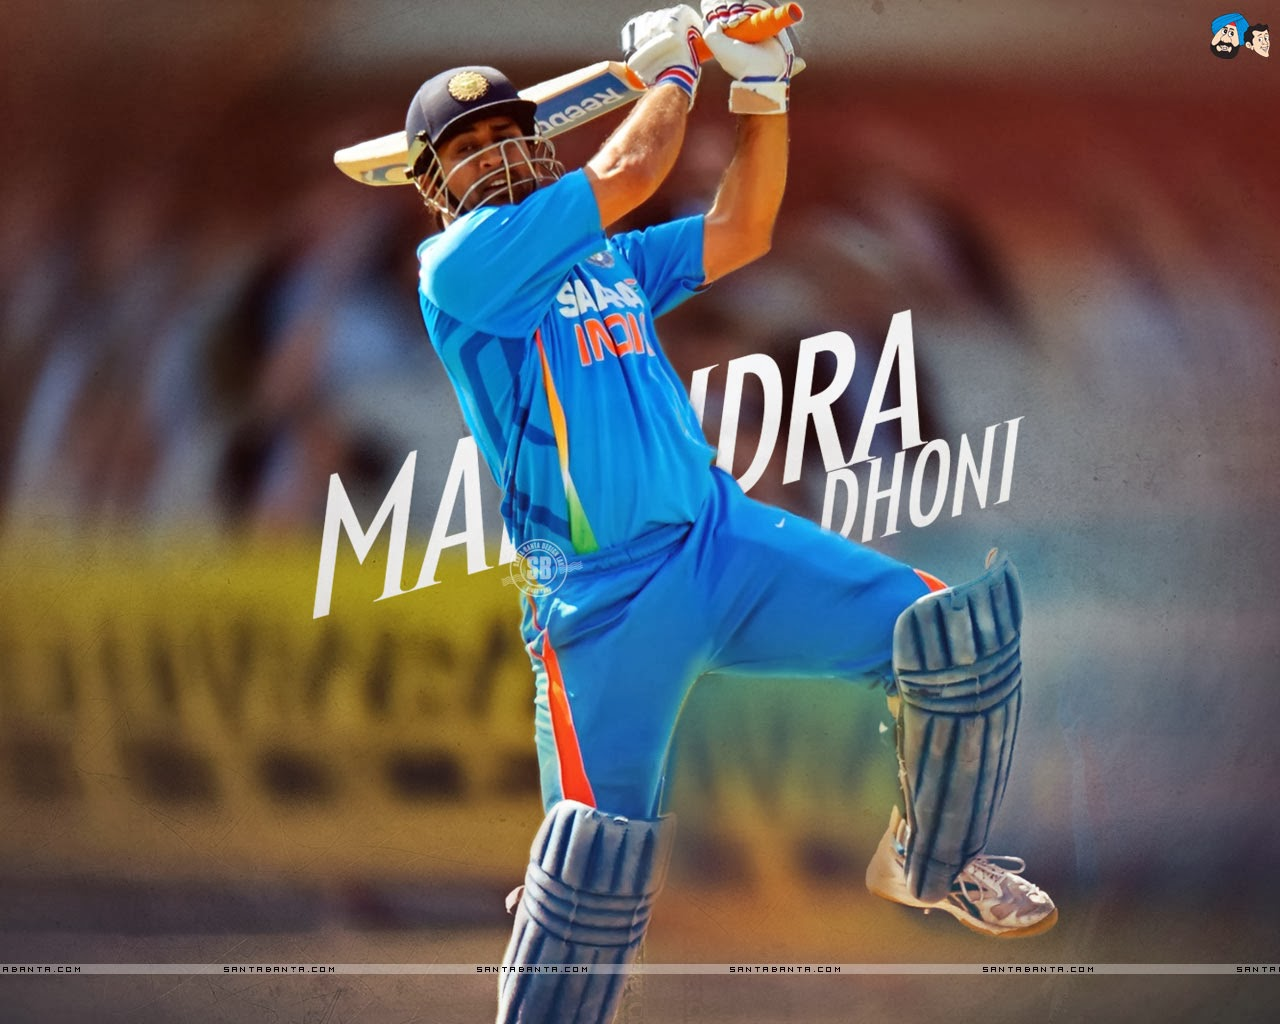 mahendra singh dhoni essay While yuvraj singh went on to join the u-19 world cup team which eventually won the 2000 u-19 cricket world cup, our captain cool mahendra singh dhoni wasn't considered despite his unconventional batting skills.